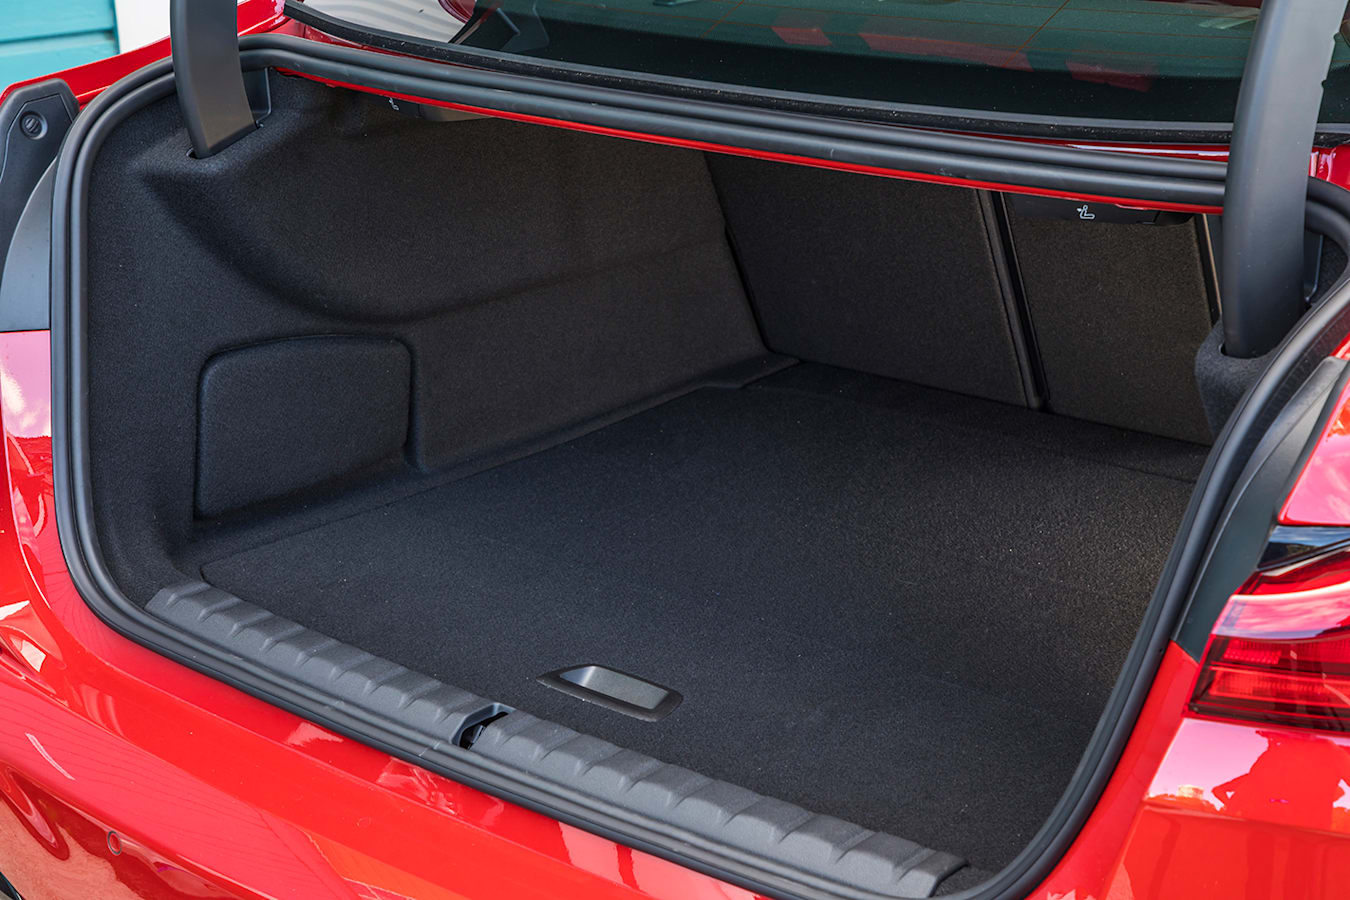 BMW 2 Series Gran Coupe luggage area